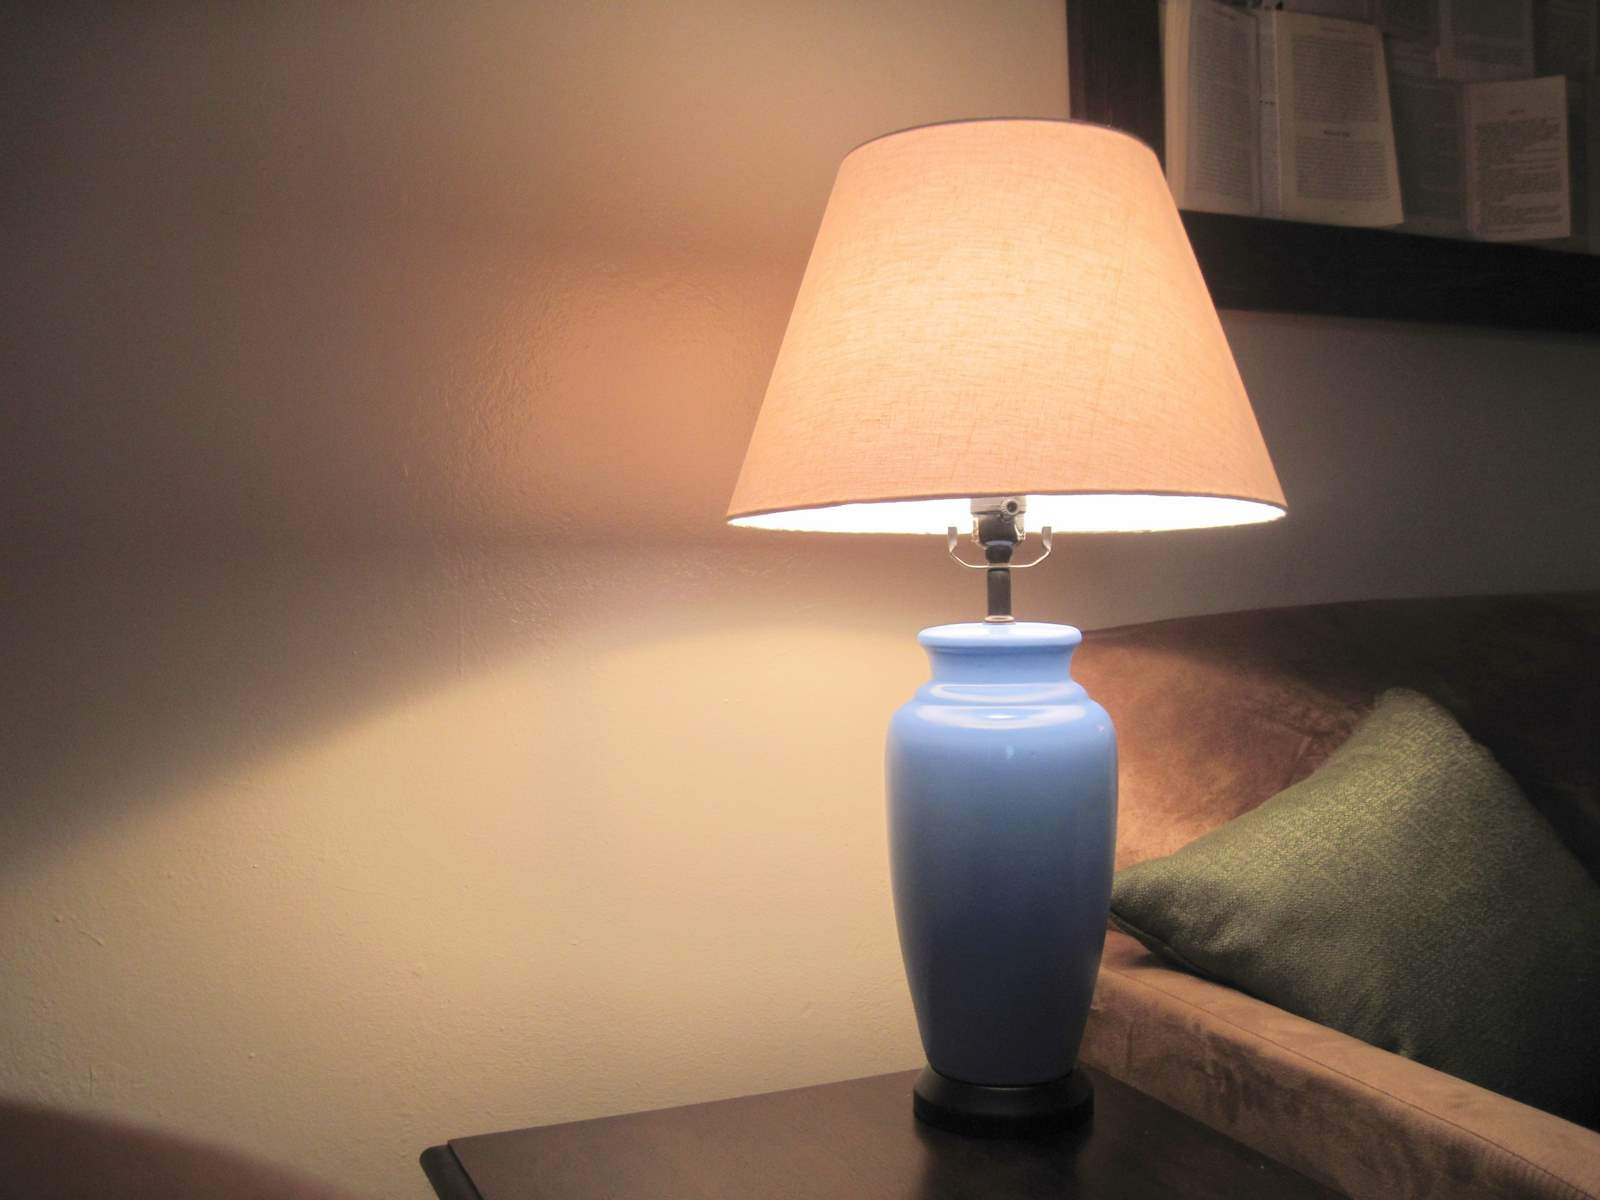 Best ideas about Living Room Lamps . Save or Pin Living Room Lamp Project Now.